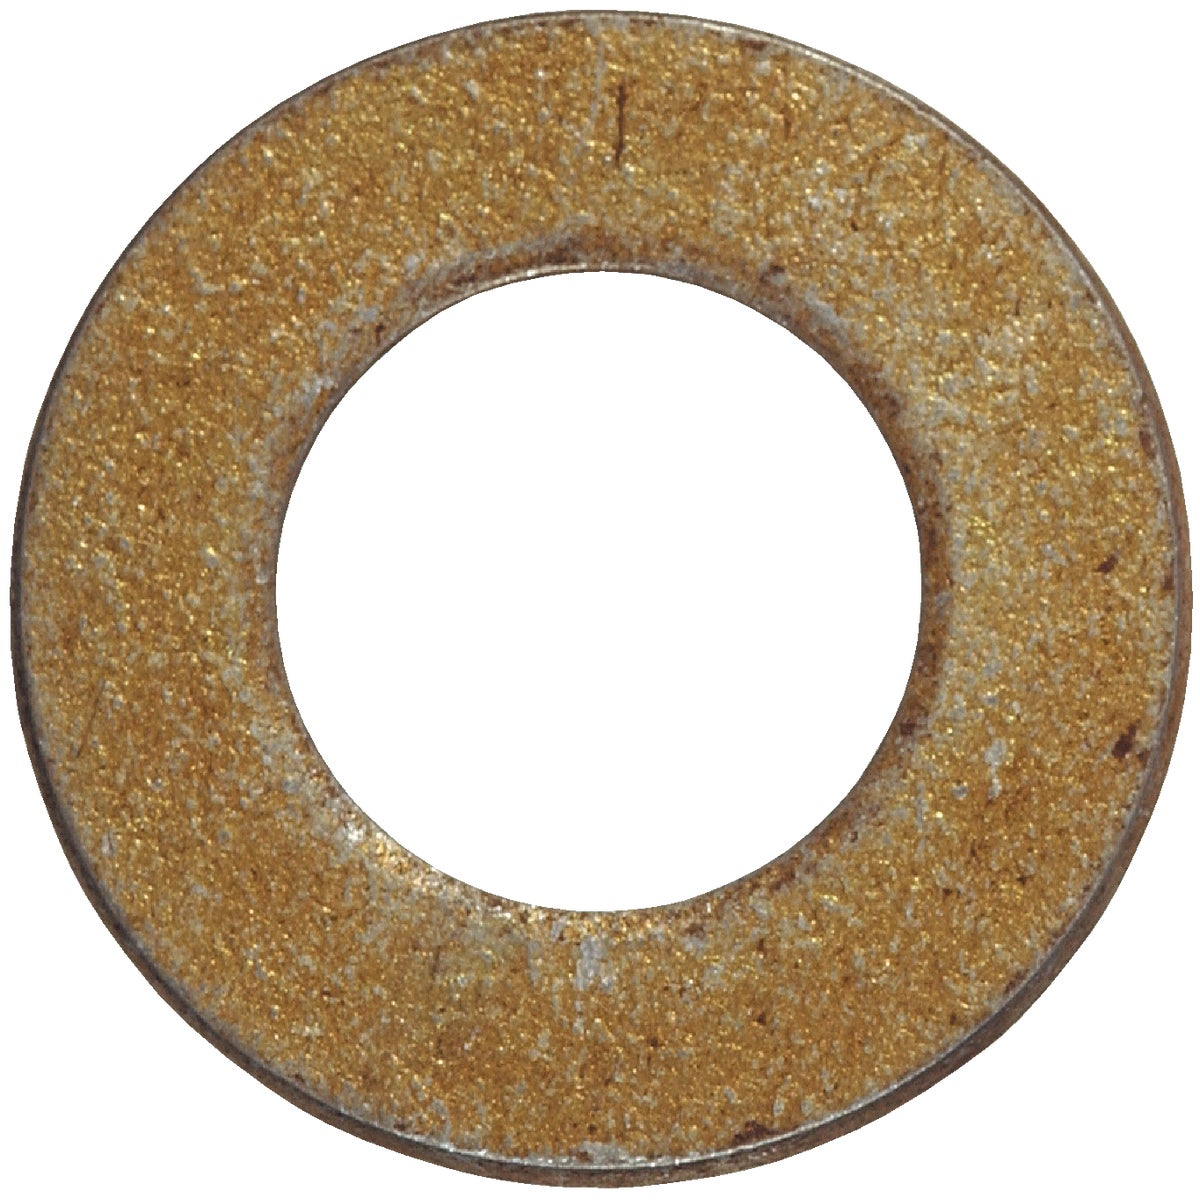 "7/8"" SAE FLAT WASHER - 280332 by Hillman Fastener"